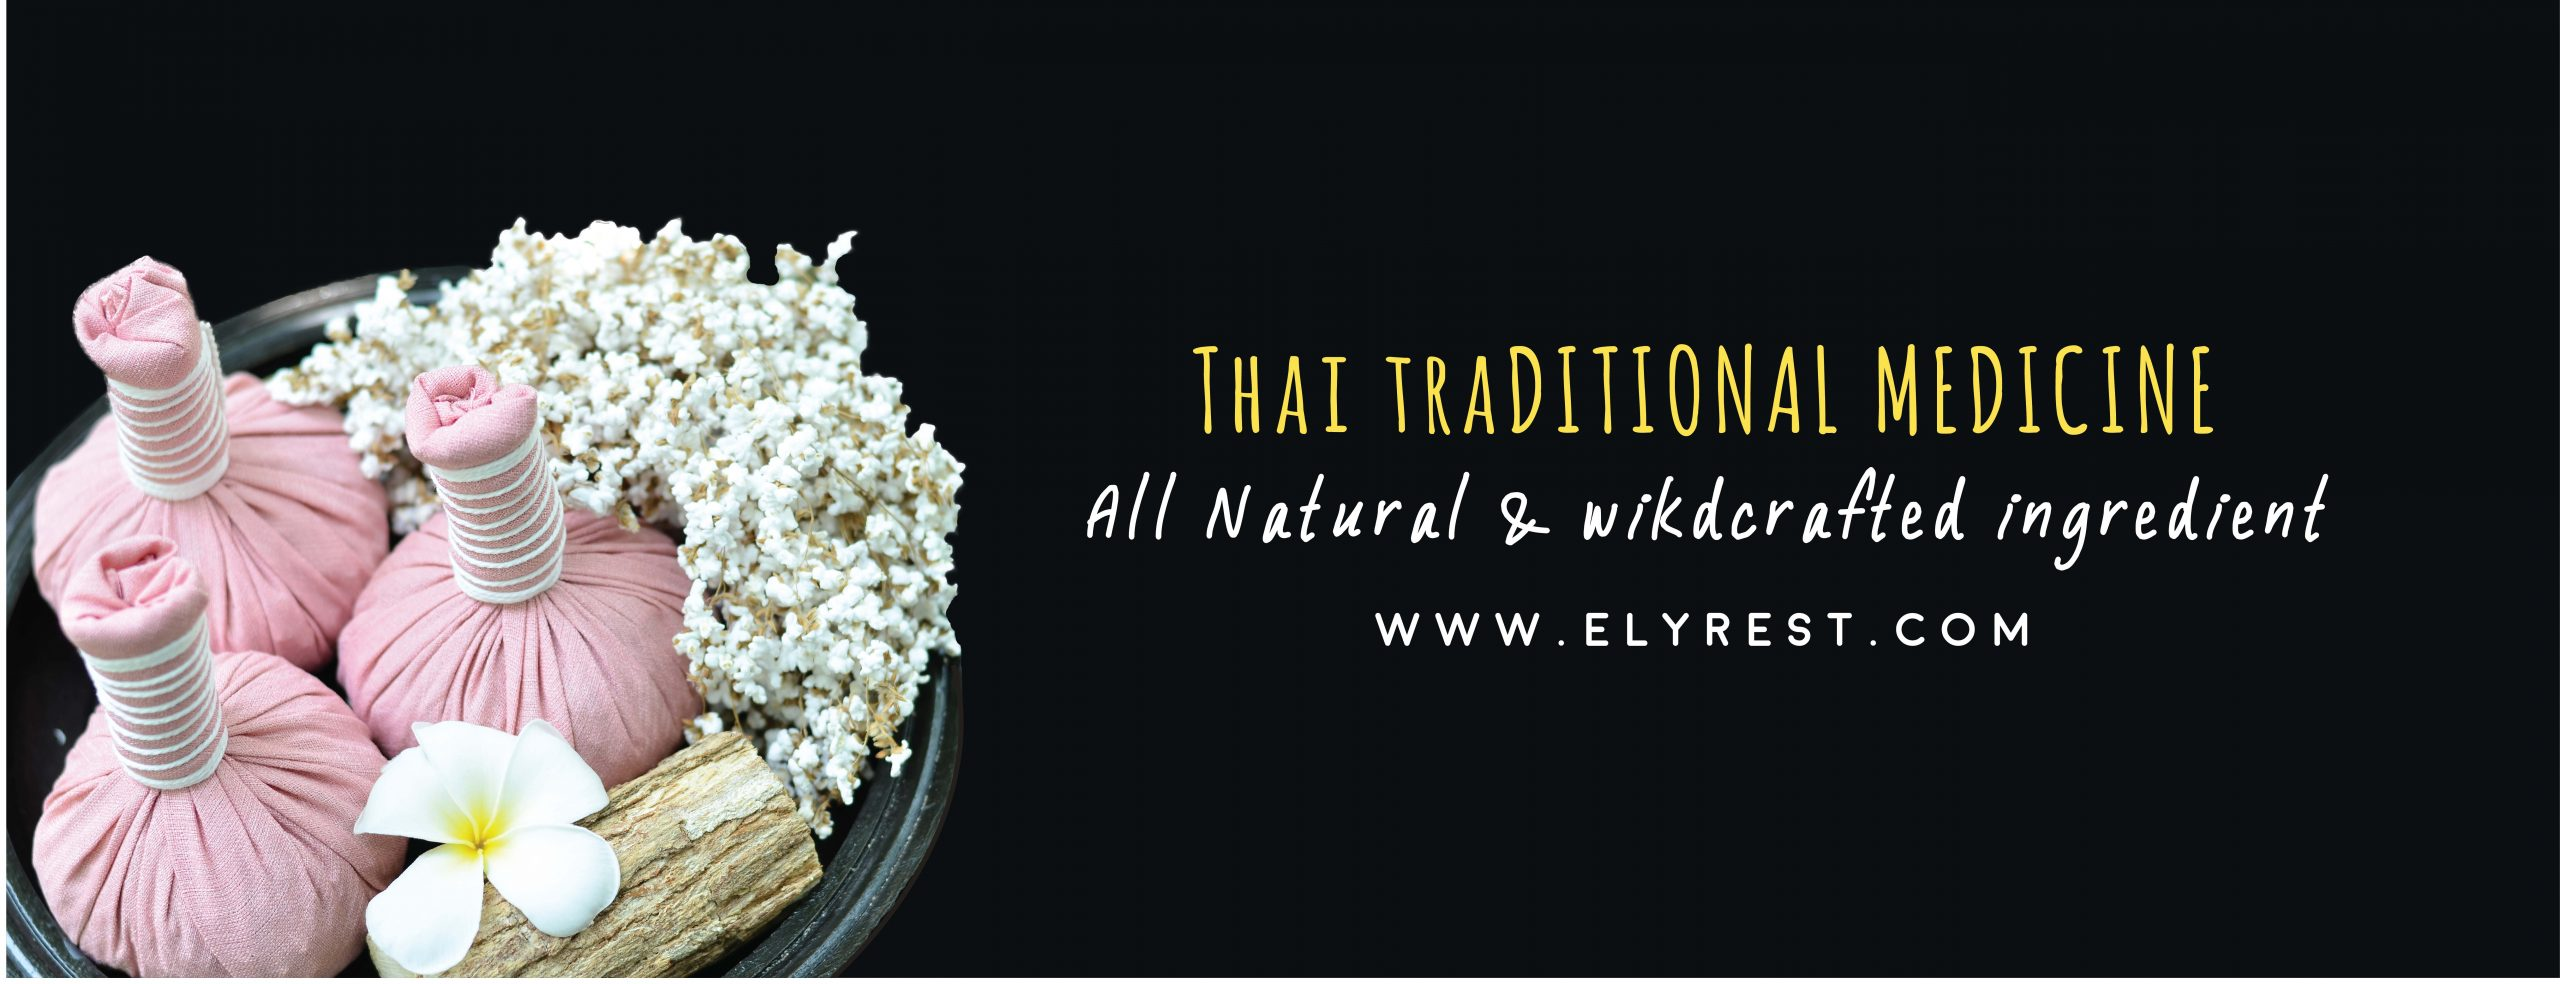 Elyrest by baanidin pop up Thai Traditional Medicine